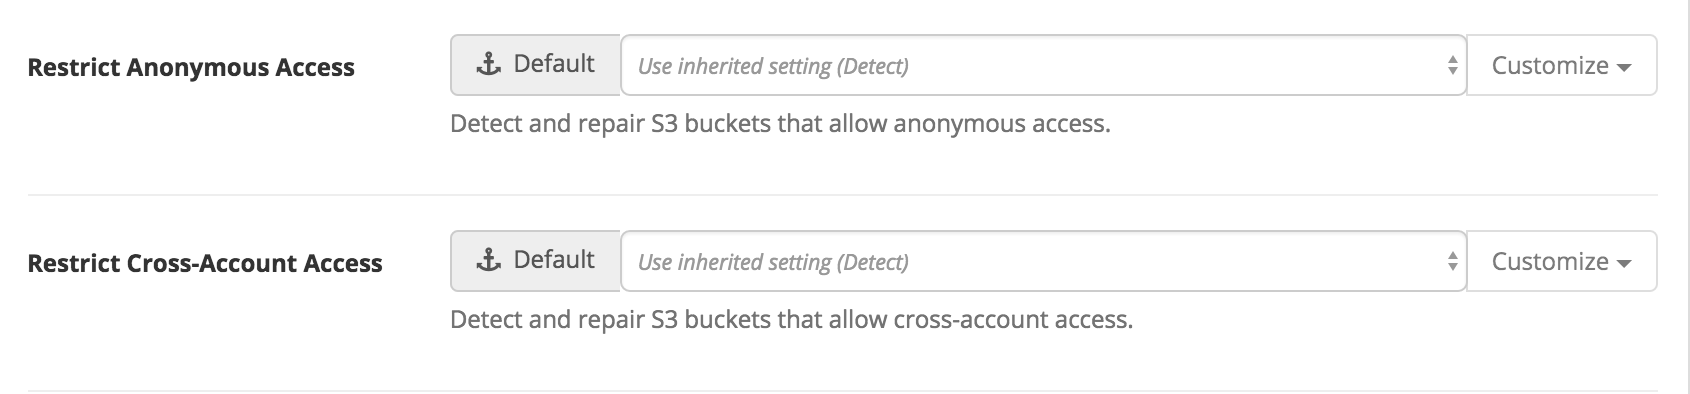 S3 Bucket Policies - Support for Custom Policies and Guardrails